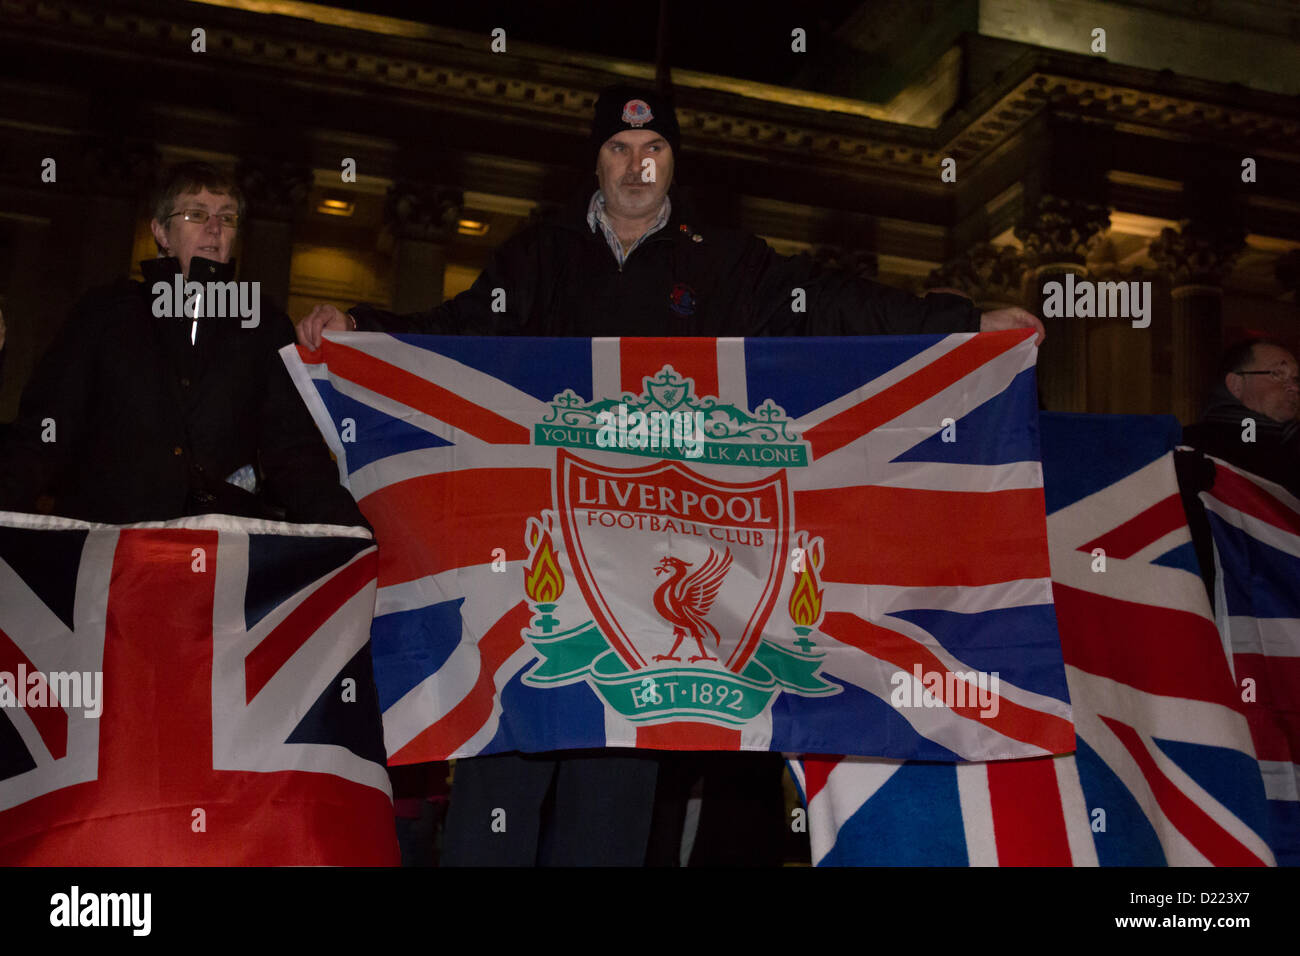 Liverpool, UK. 11th January 2013. A protest held in Liverpool, UK in support of the union flag being flown on Belfast - Stock Image